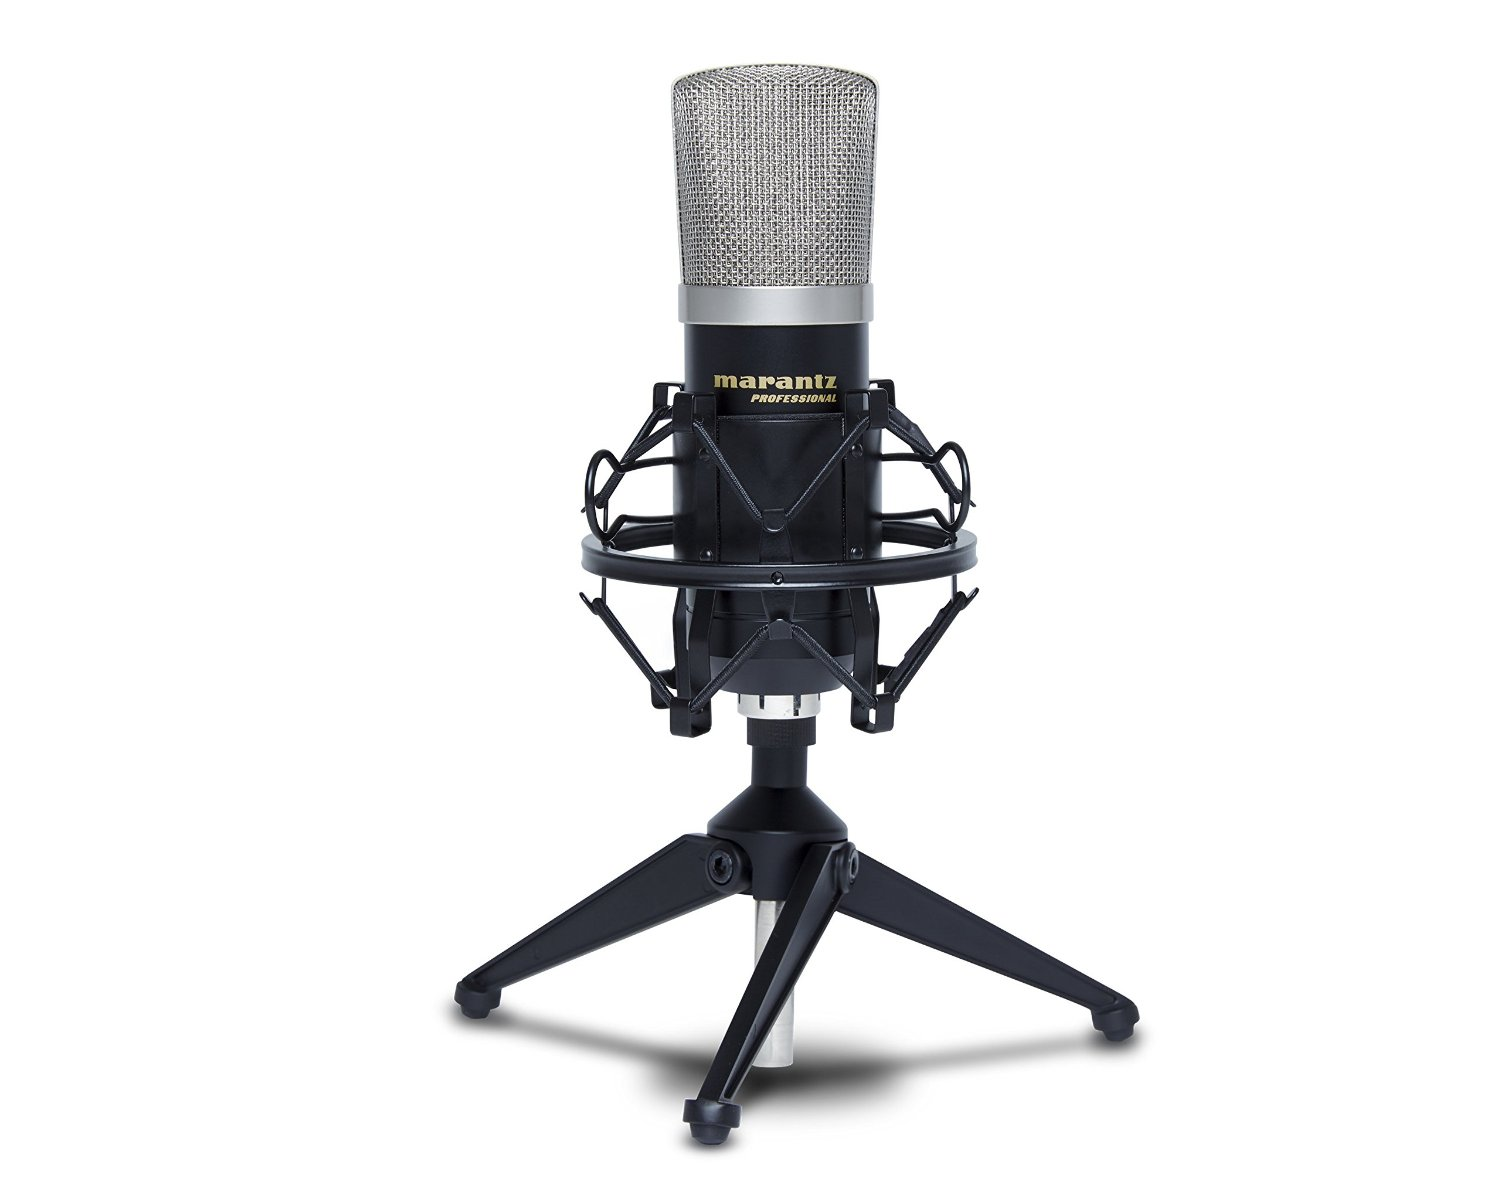 Best Budget Microphones - Get a Top 20 Podcast Microphone for Under $200 - Marantz Professional MPM-500A